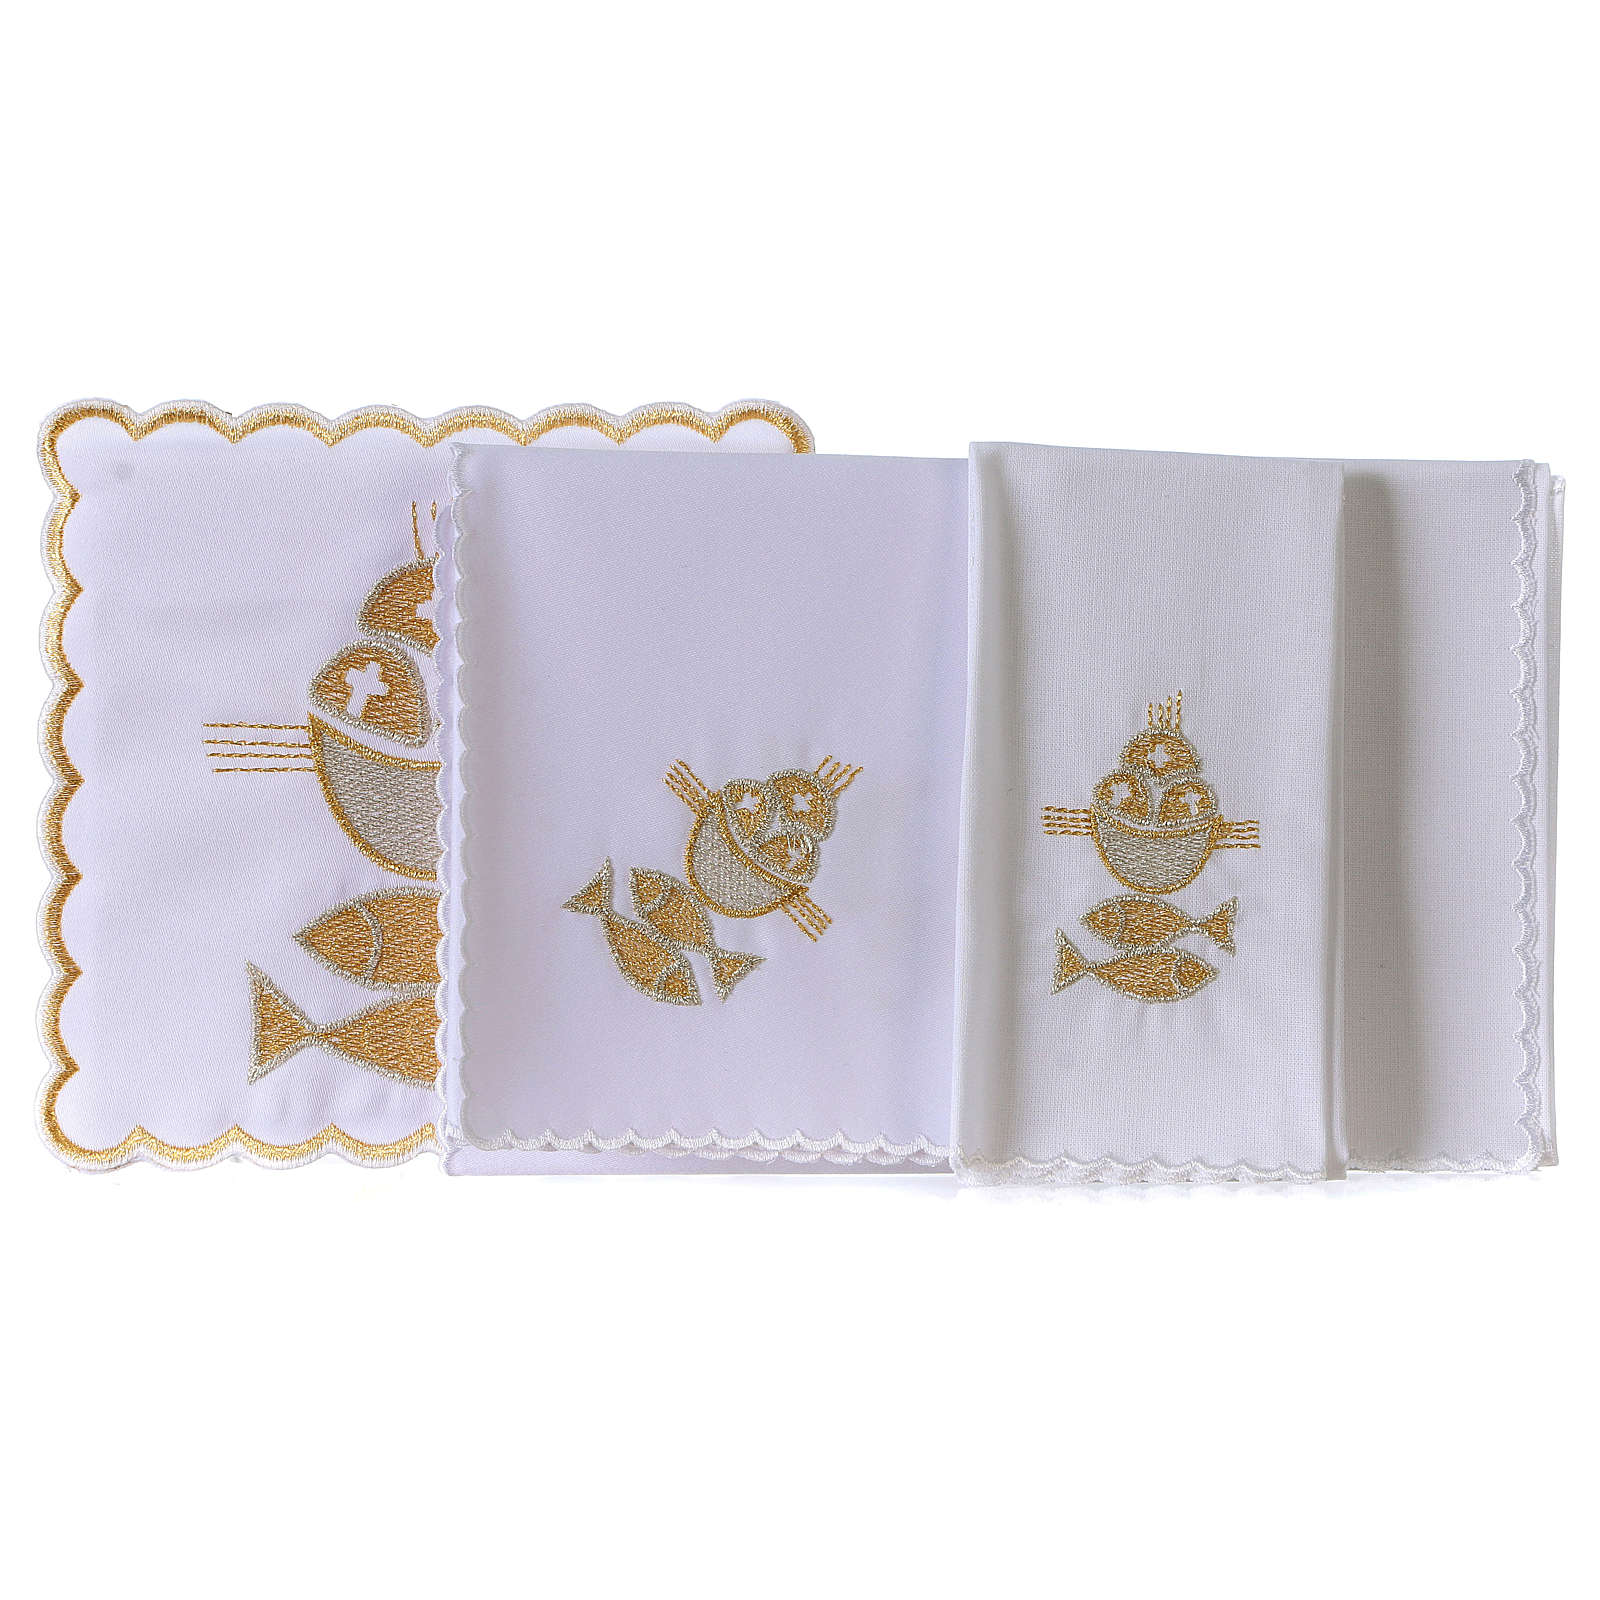 Mass linens 4 pcs. loaves and fishes symbol 4